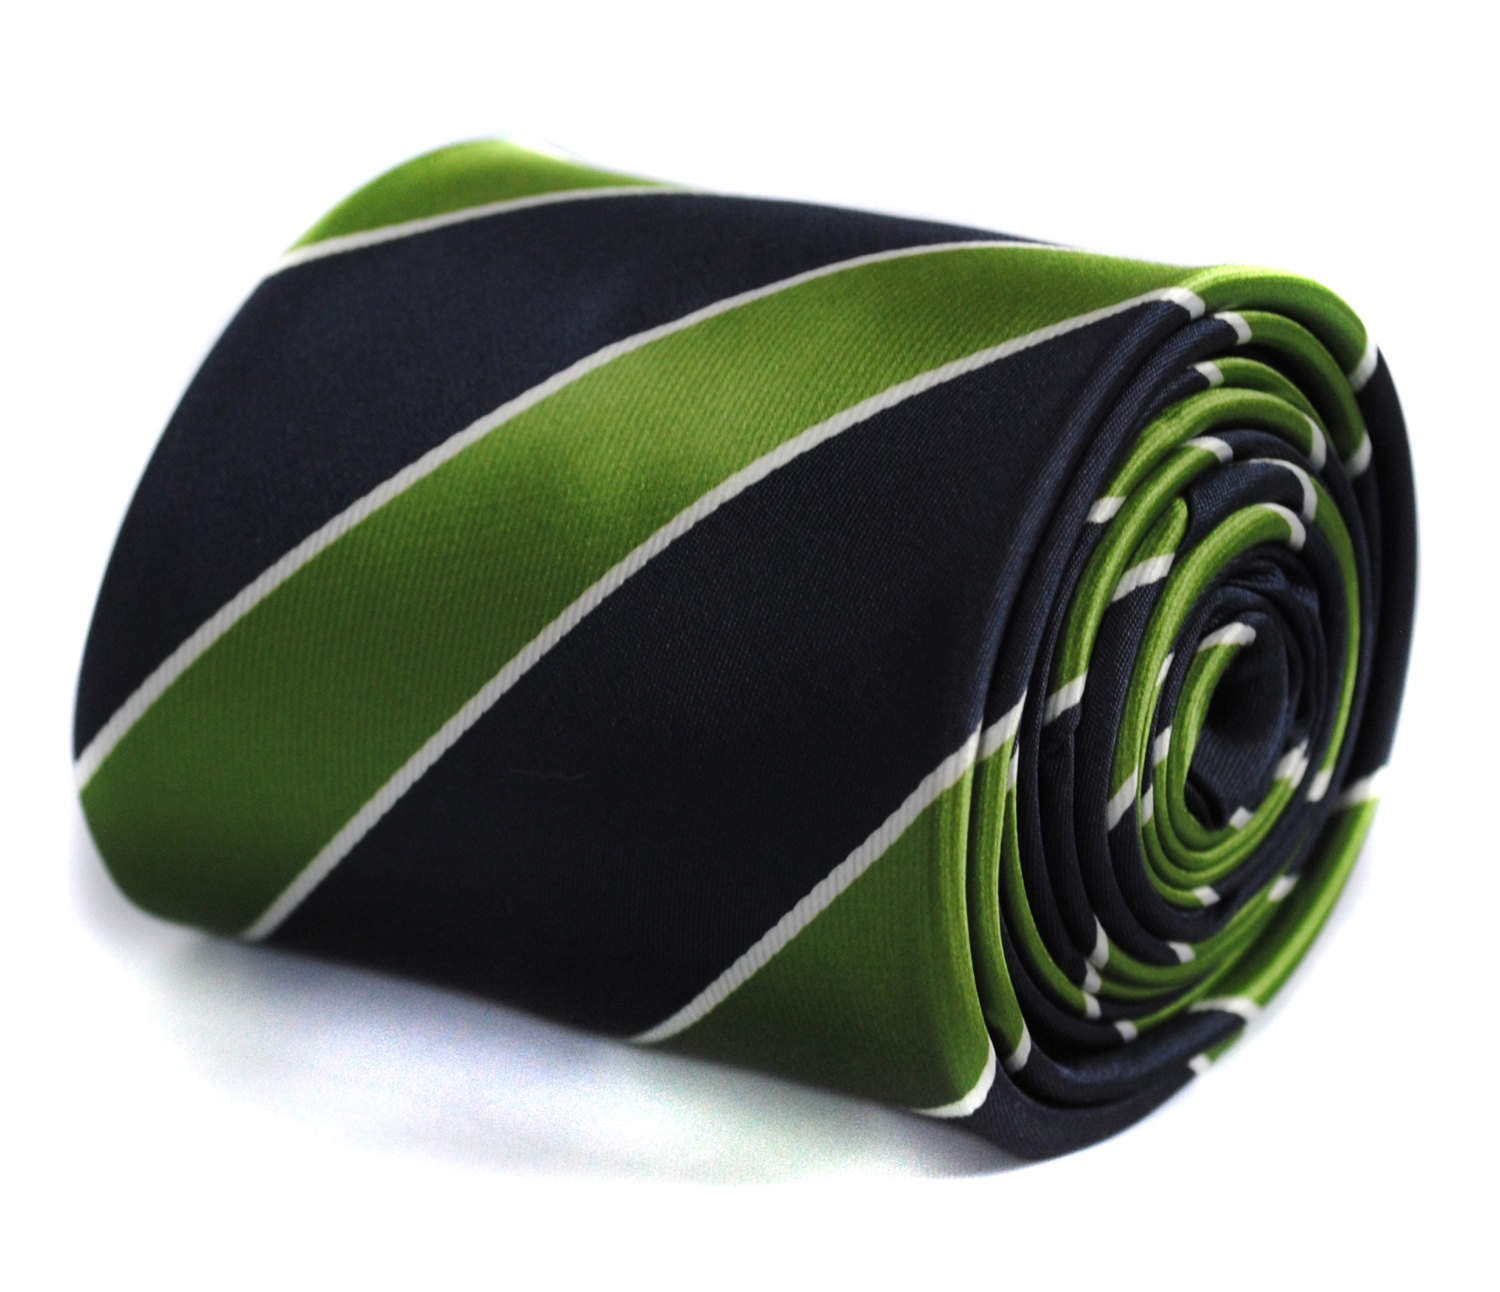 green, navy blue and white striped tie with signature floral design to the rear